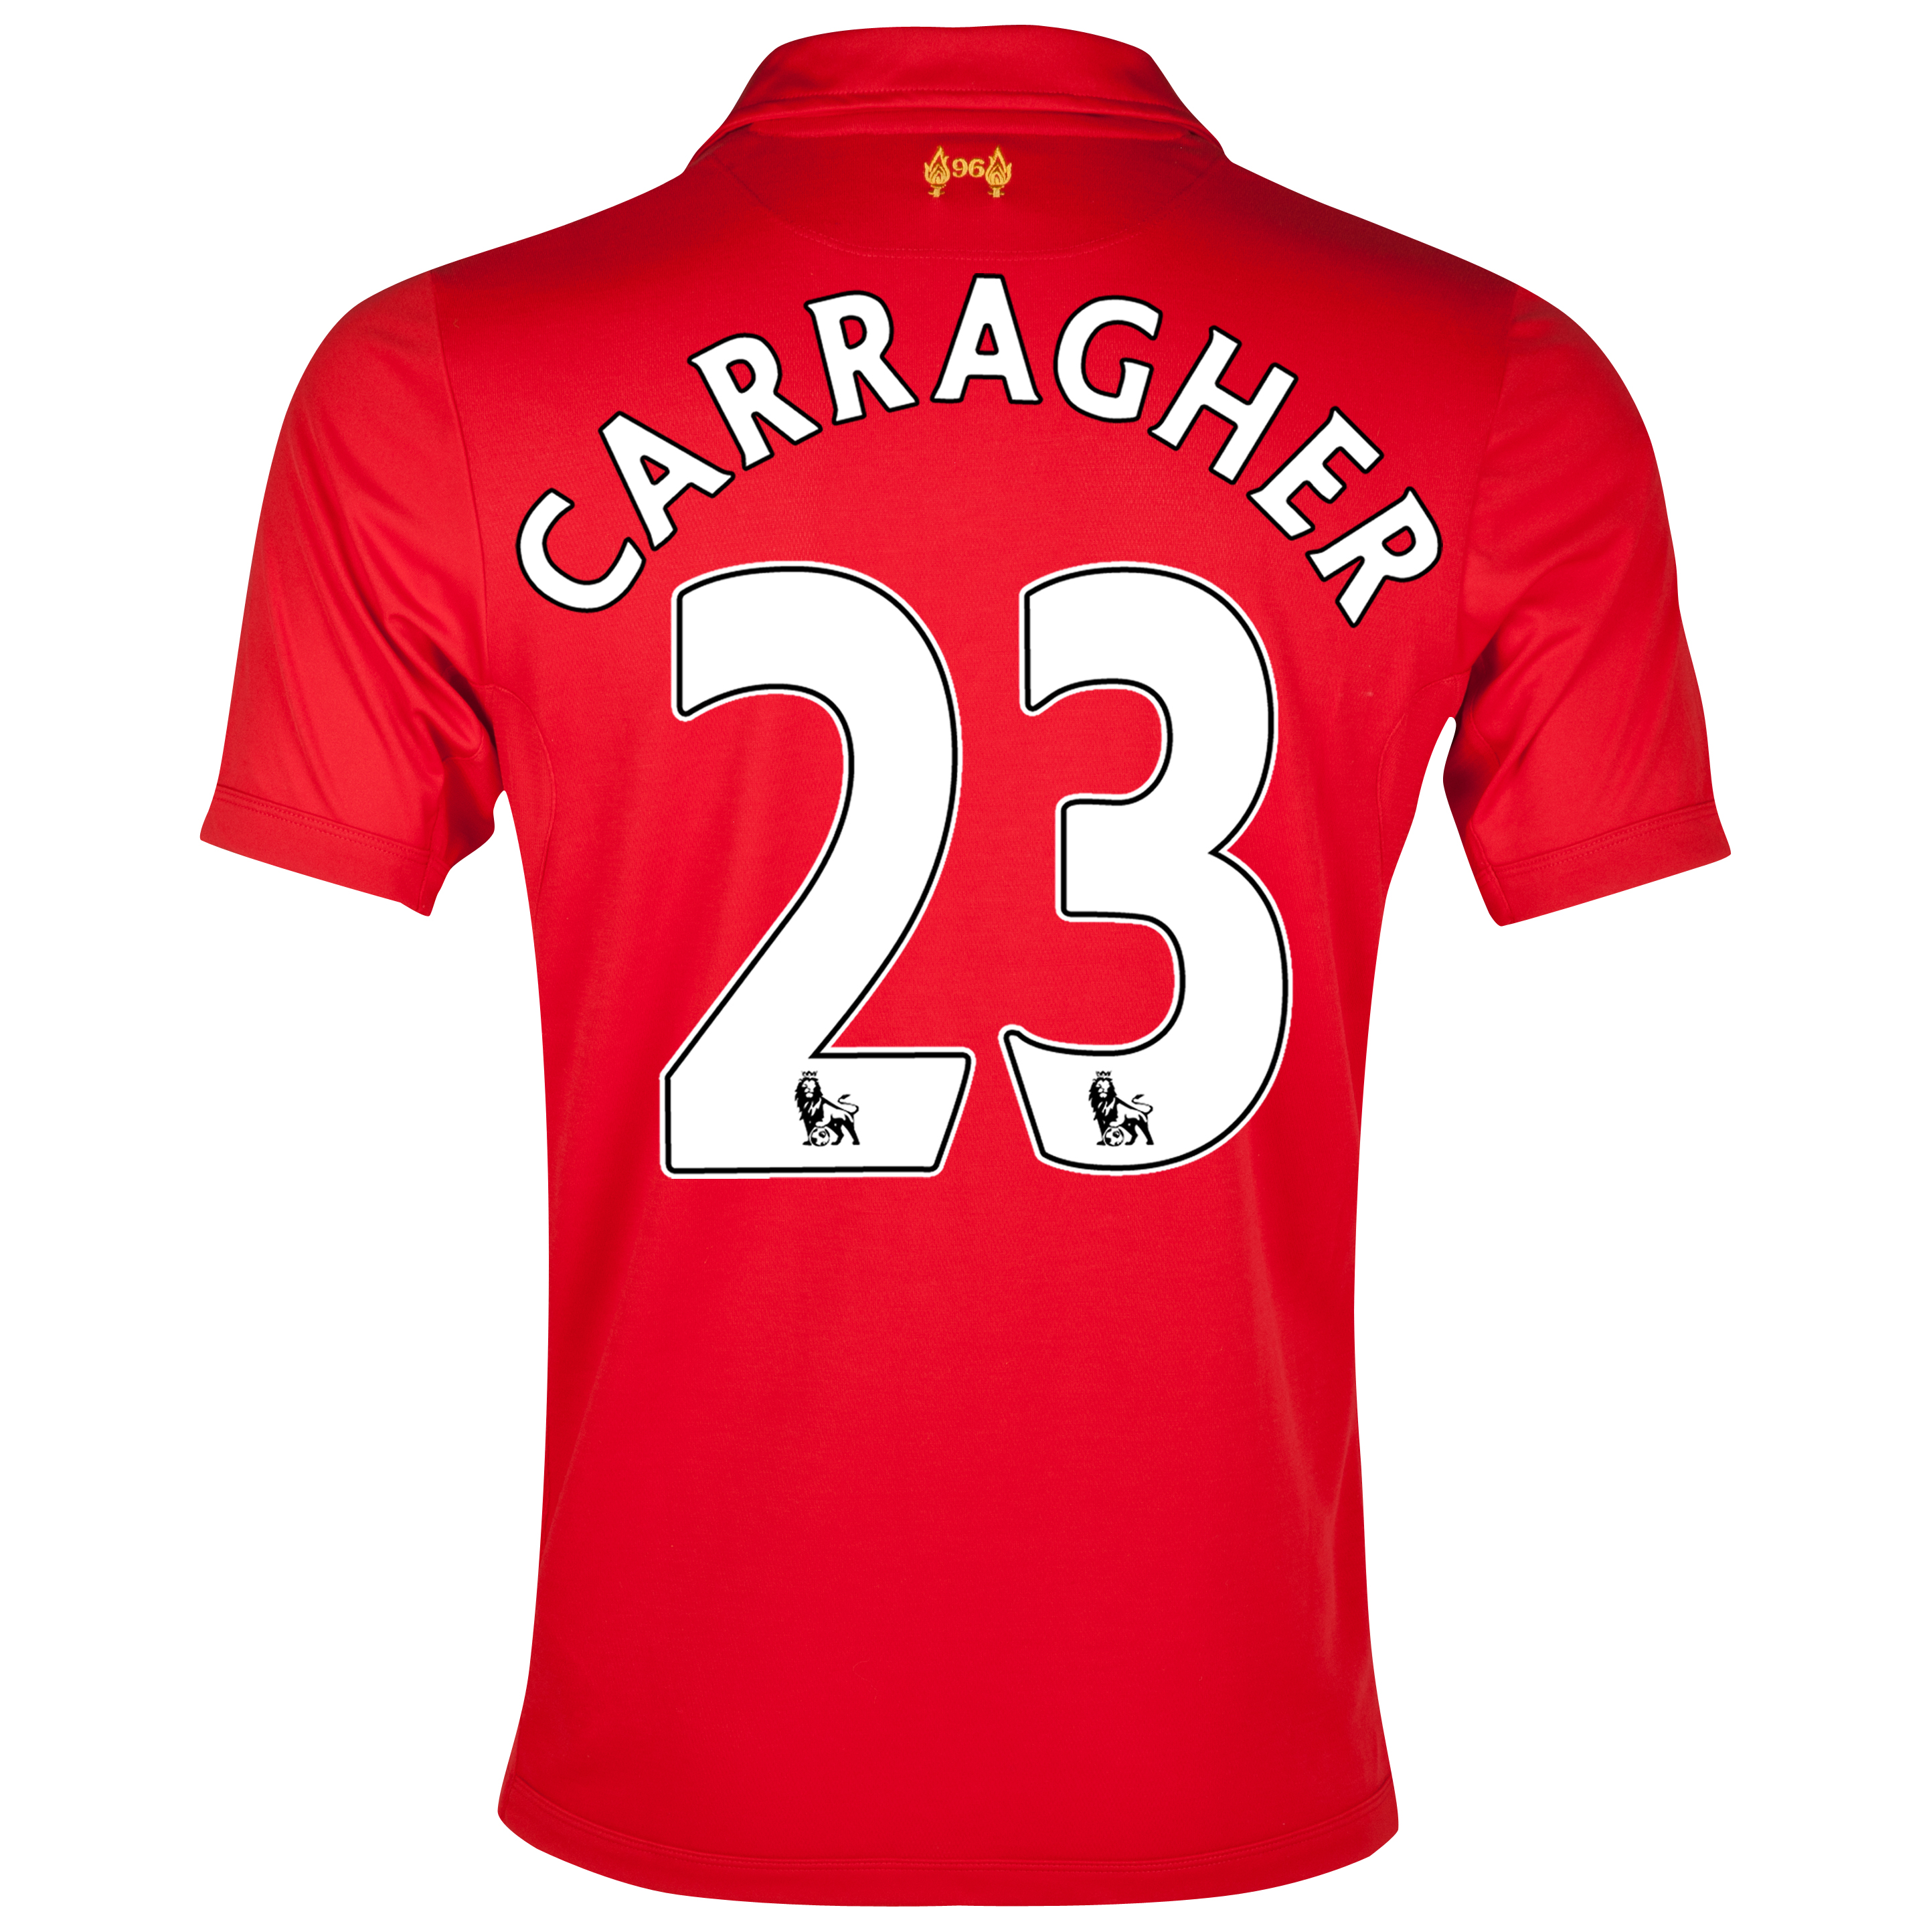 Liverpool Home Shirt 2012/13 with Carragher 23 printing